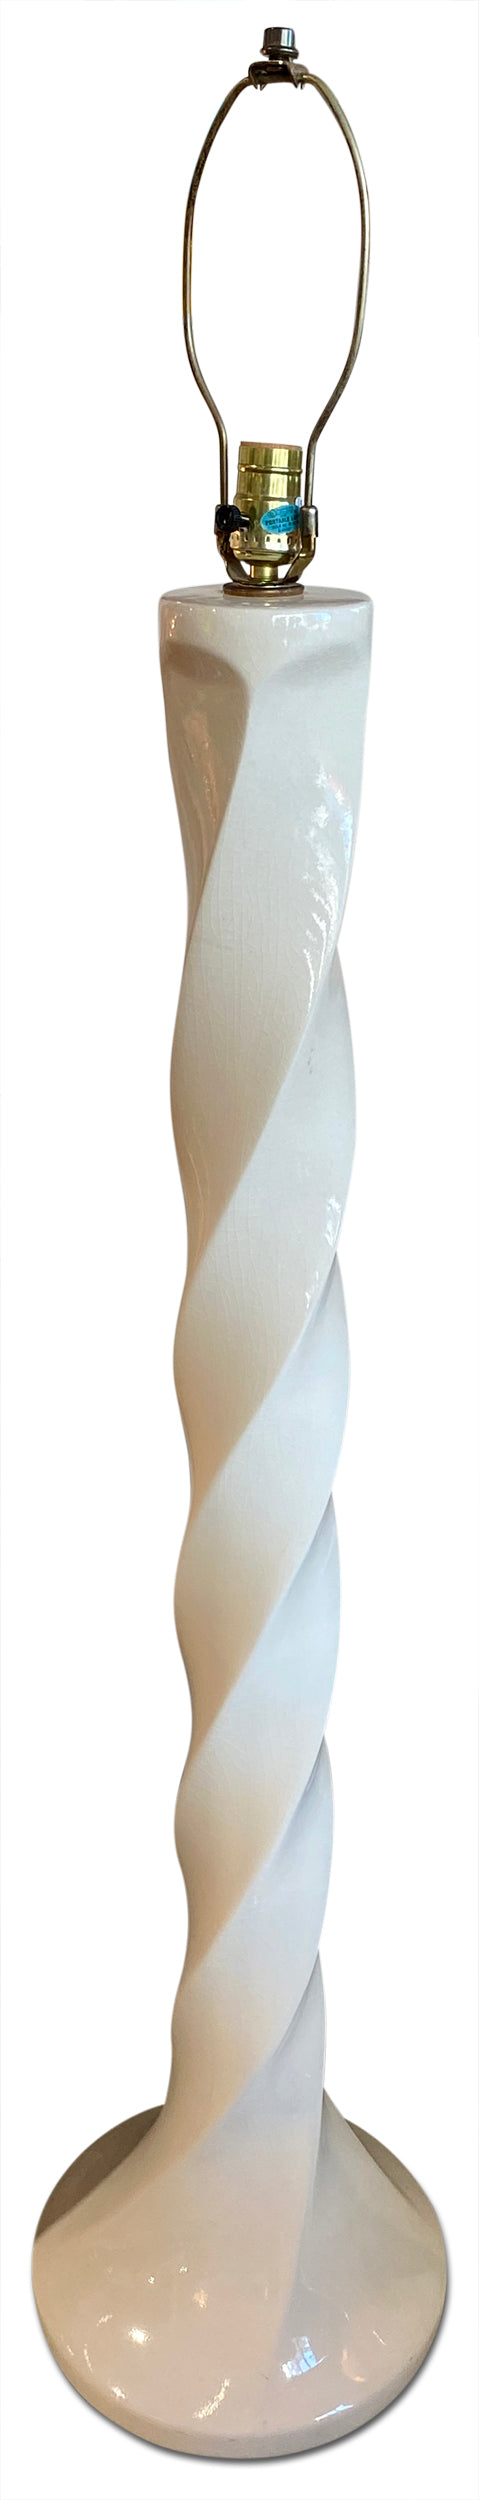 White Ceramic Swirl Lamp